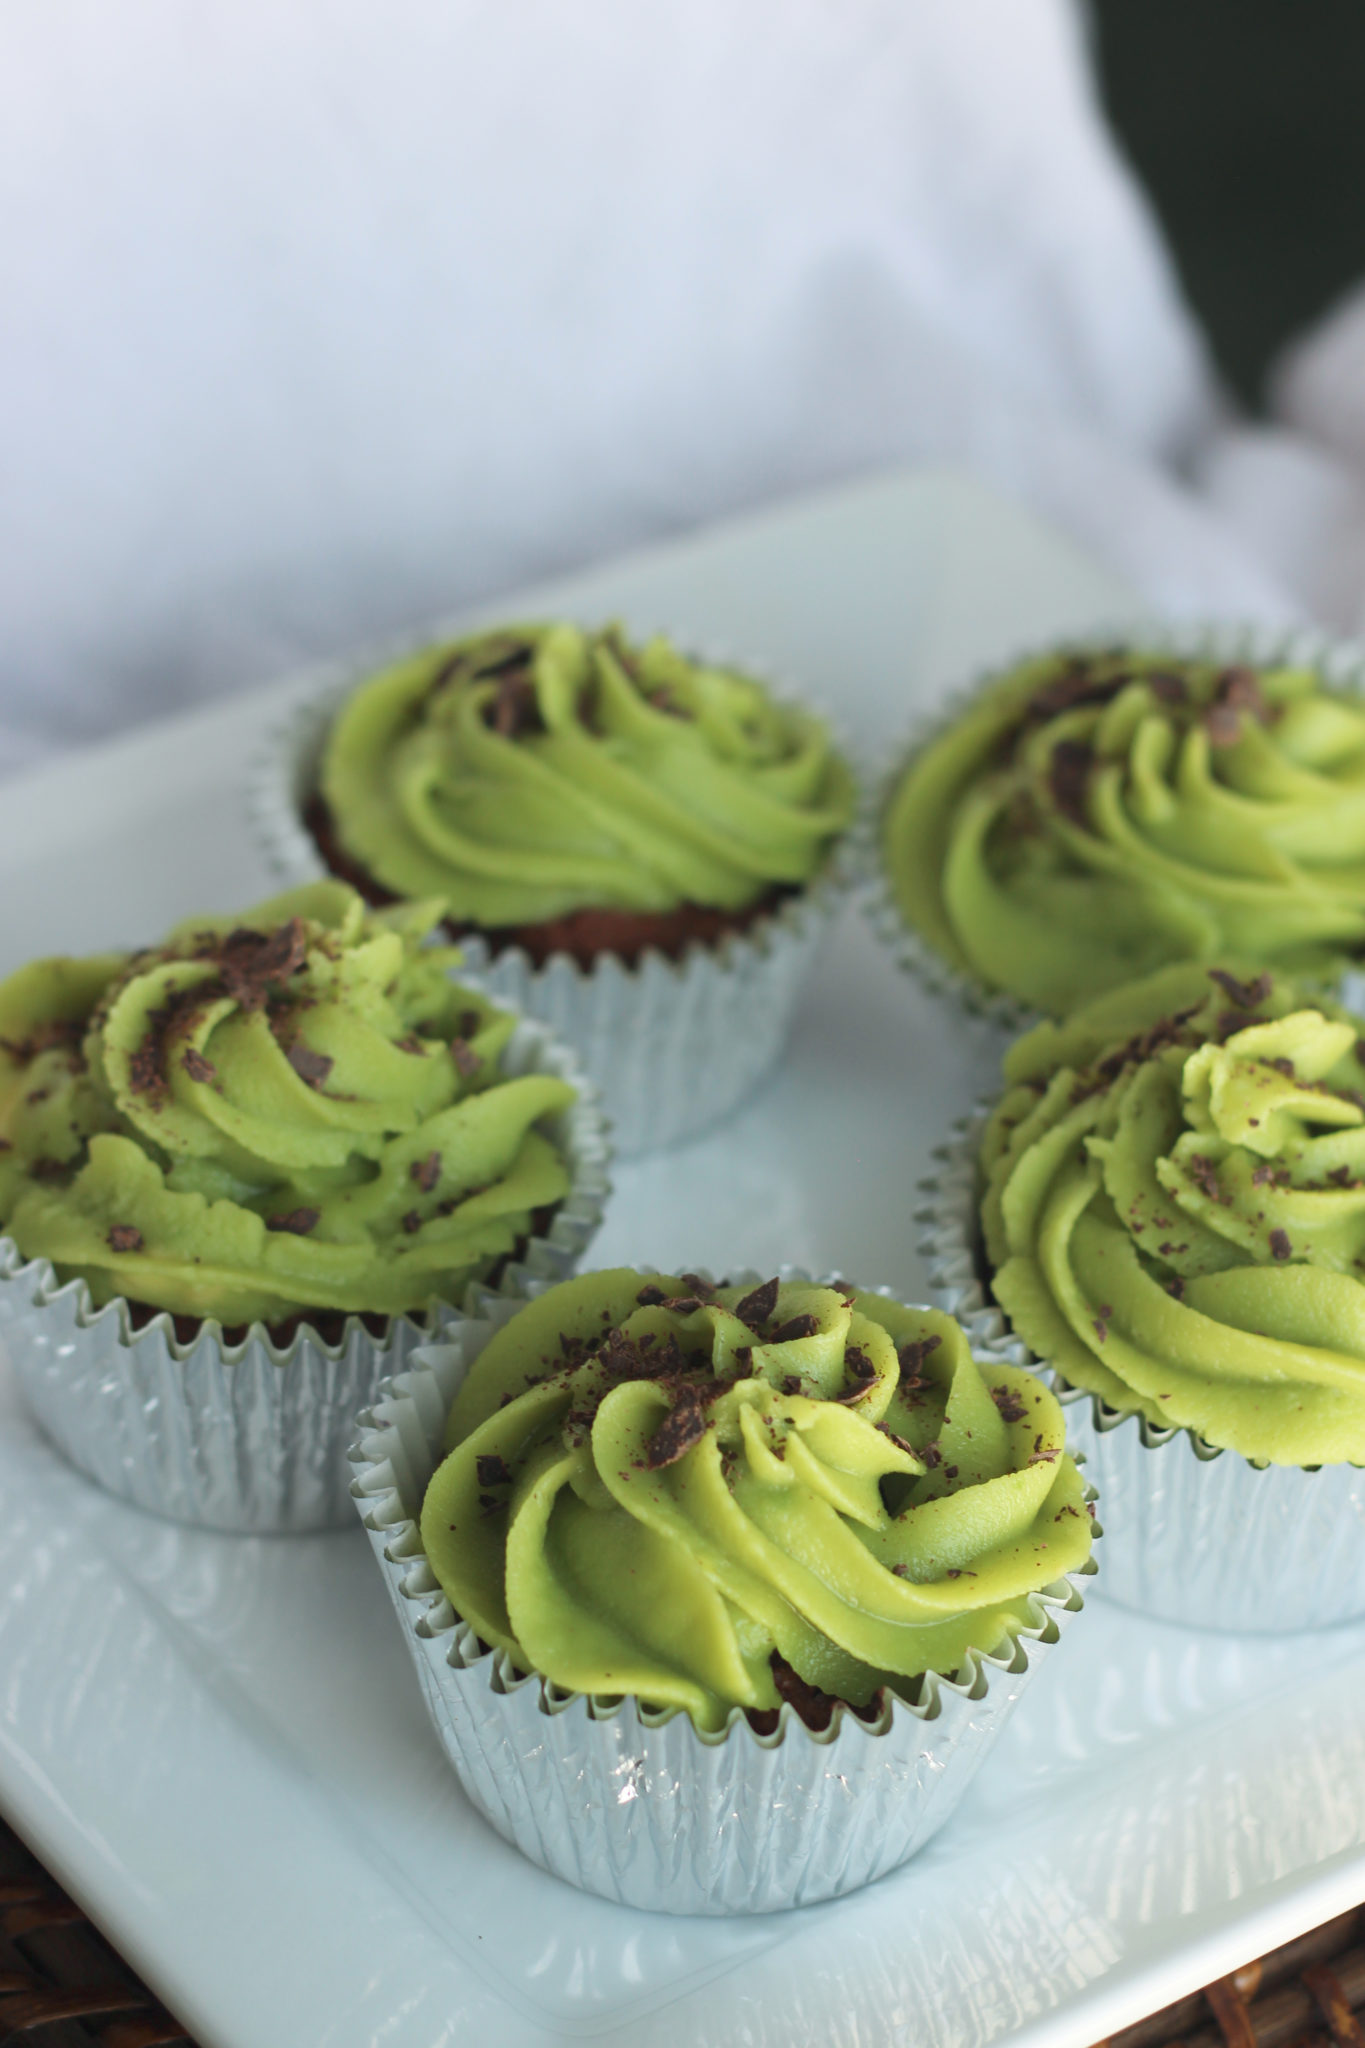 Chocolate Cupcakes with Green Mint Frosting and Shaved Chocolate garnish.